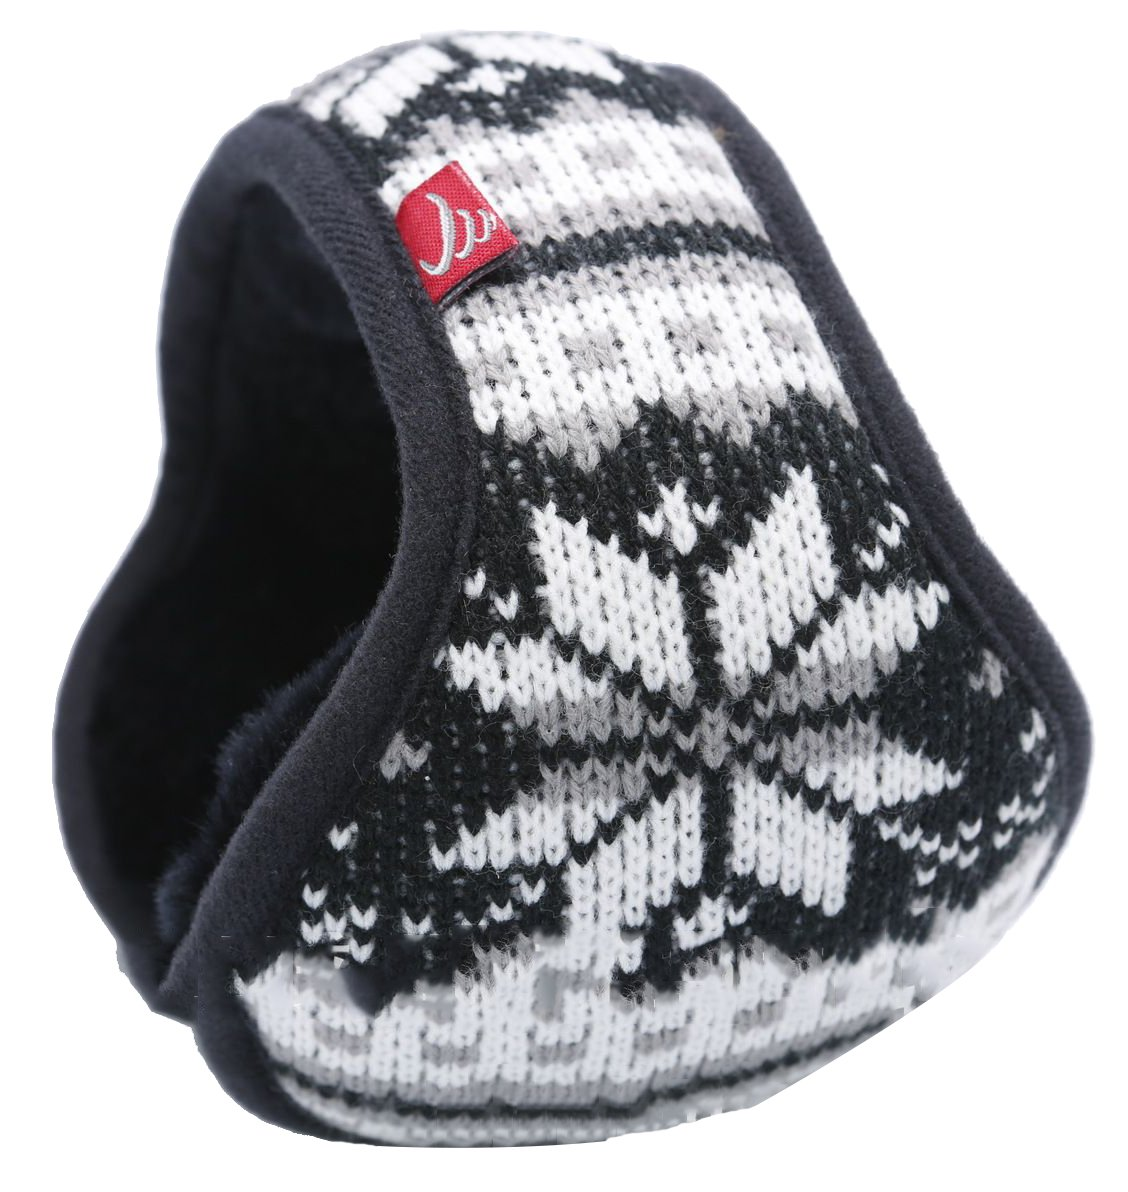 Ilishop Unisex Woolen Yarn Big Snowflake Pattern Wrap around Earmuffs Black Free